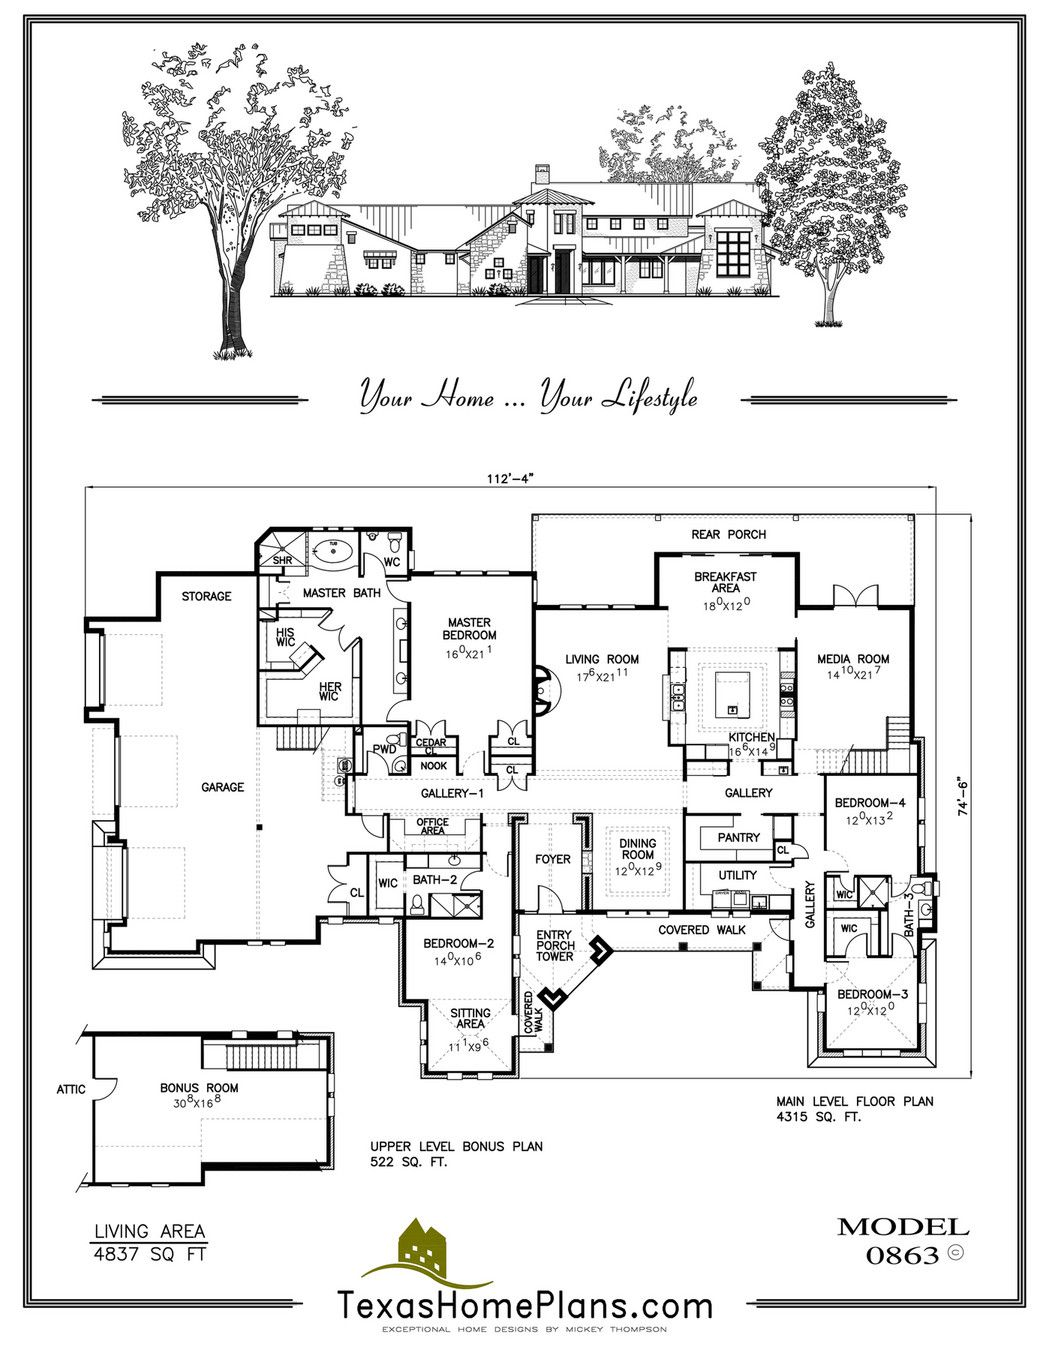 Texas Home Plans Texas Mission Homes Page 56 57 Texas Homes Country Floor Plans How To Plan